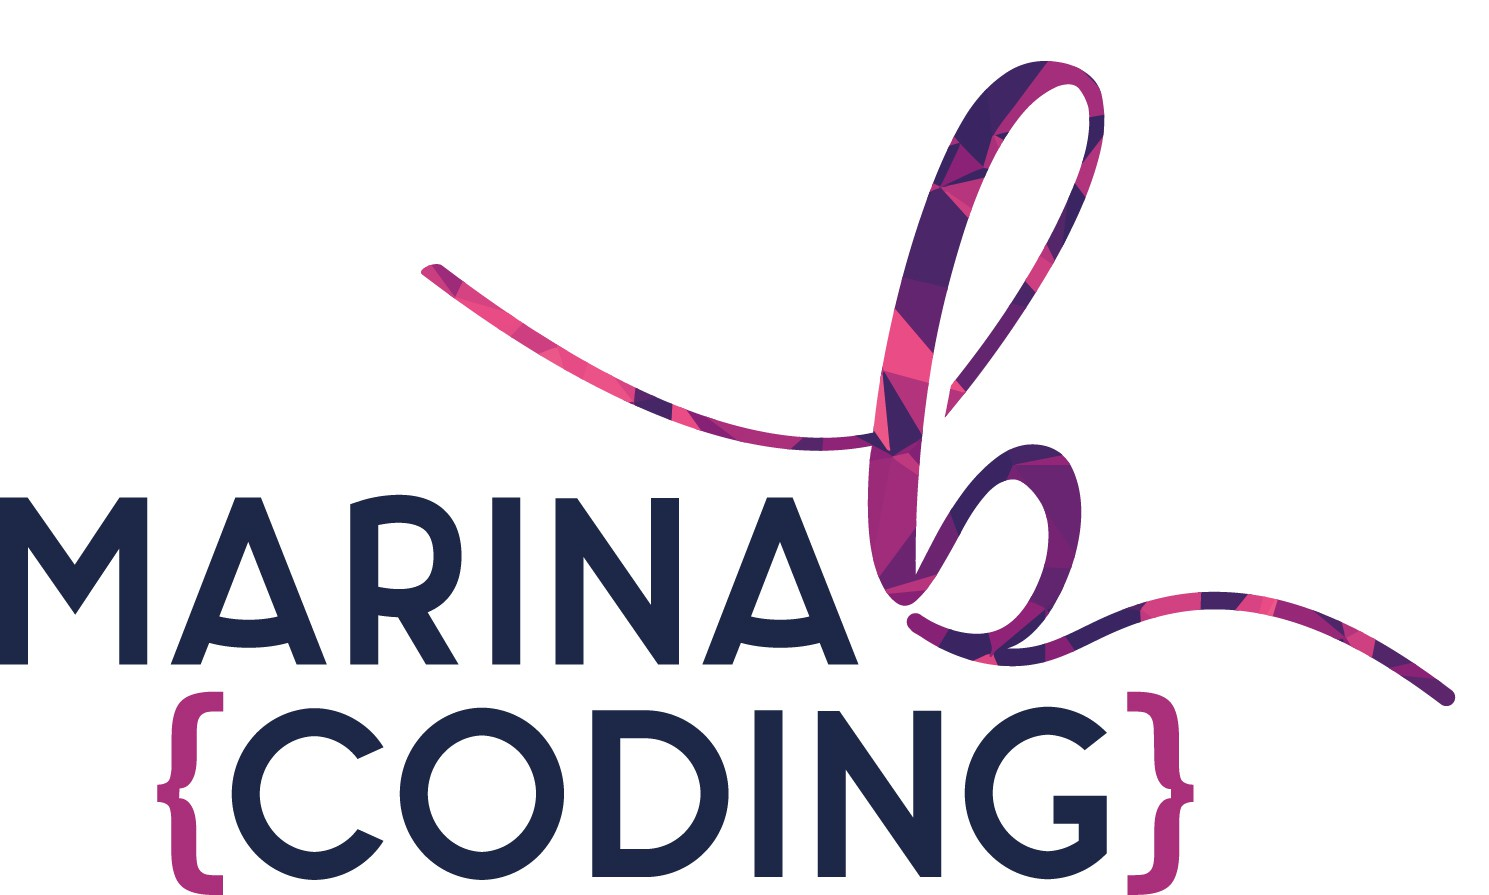 Create a quirky and fun logo and brand identity for MarinaBcoding - Creative digital workshop